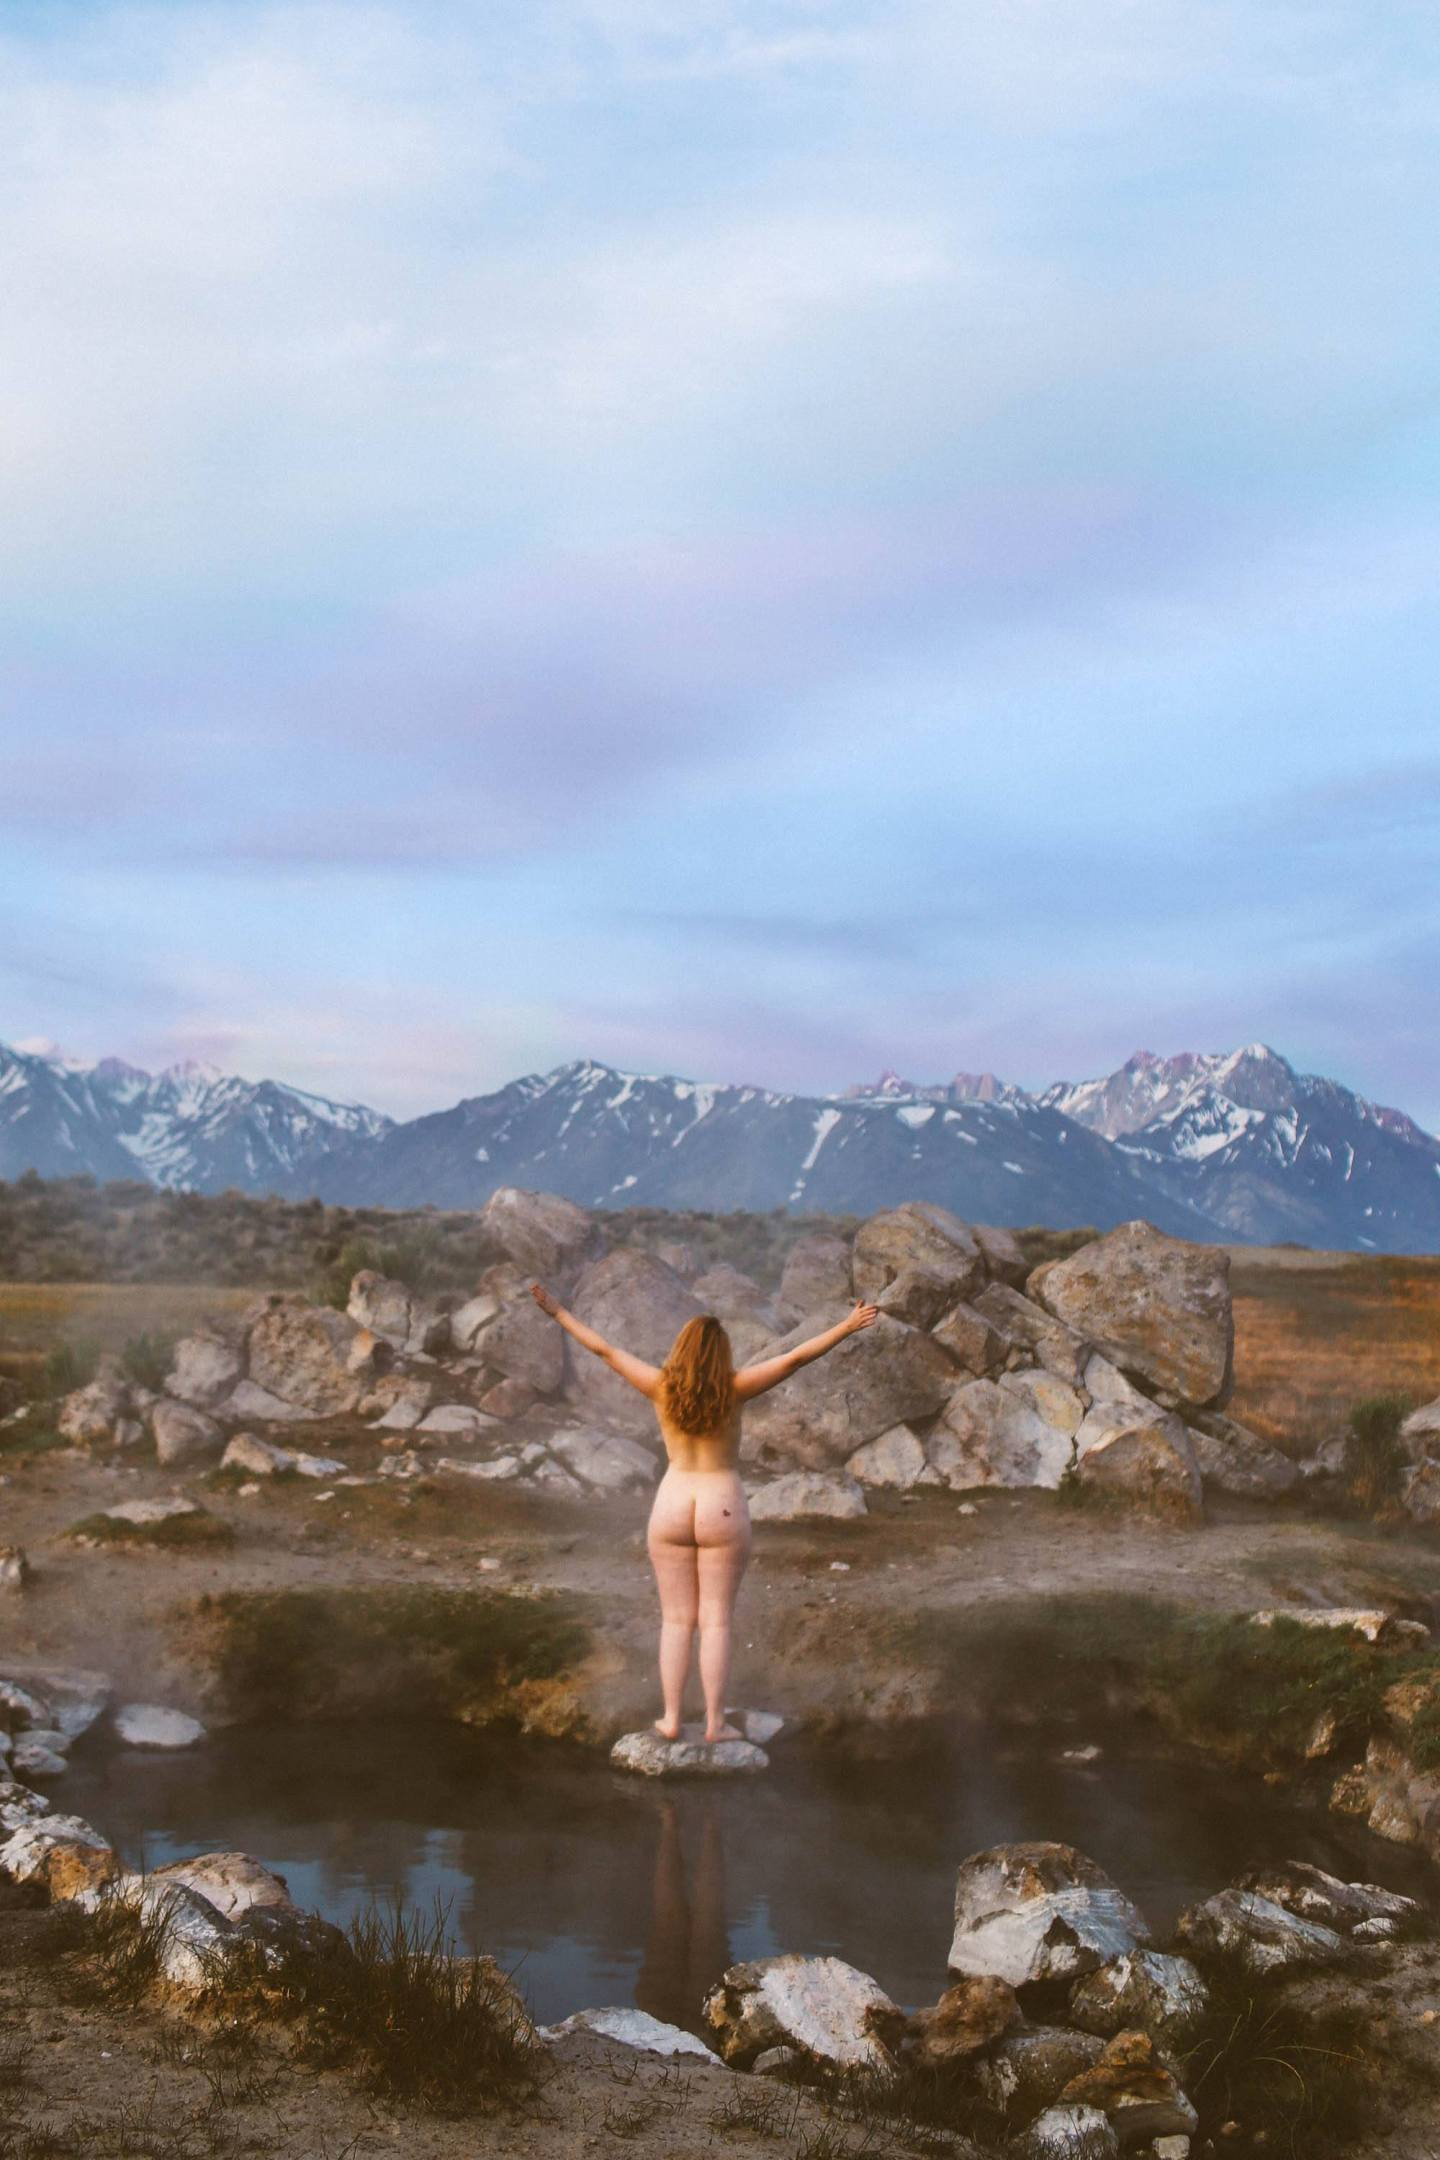 Woman standing naked on rock in a hot spring with snow capped mountains in the background